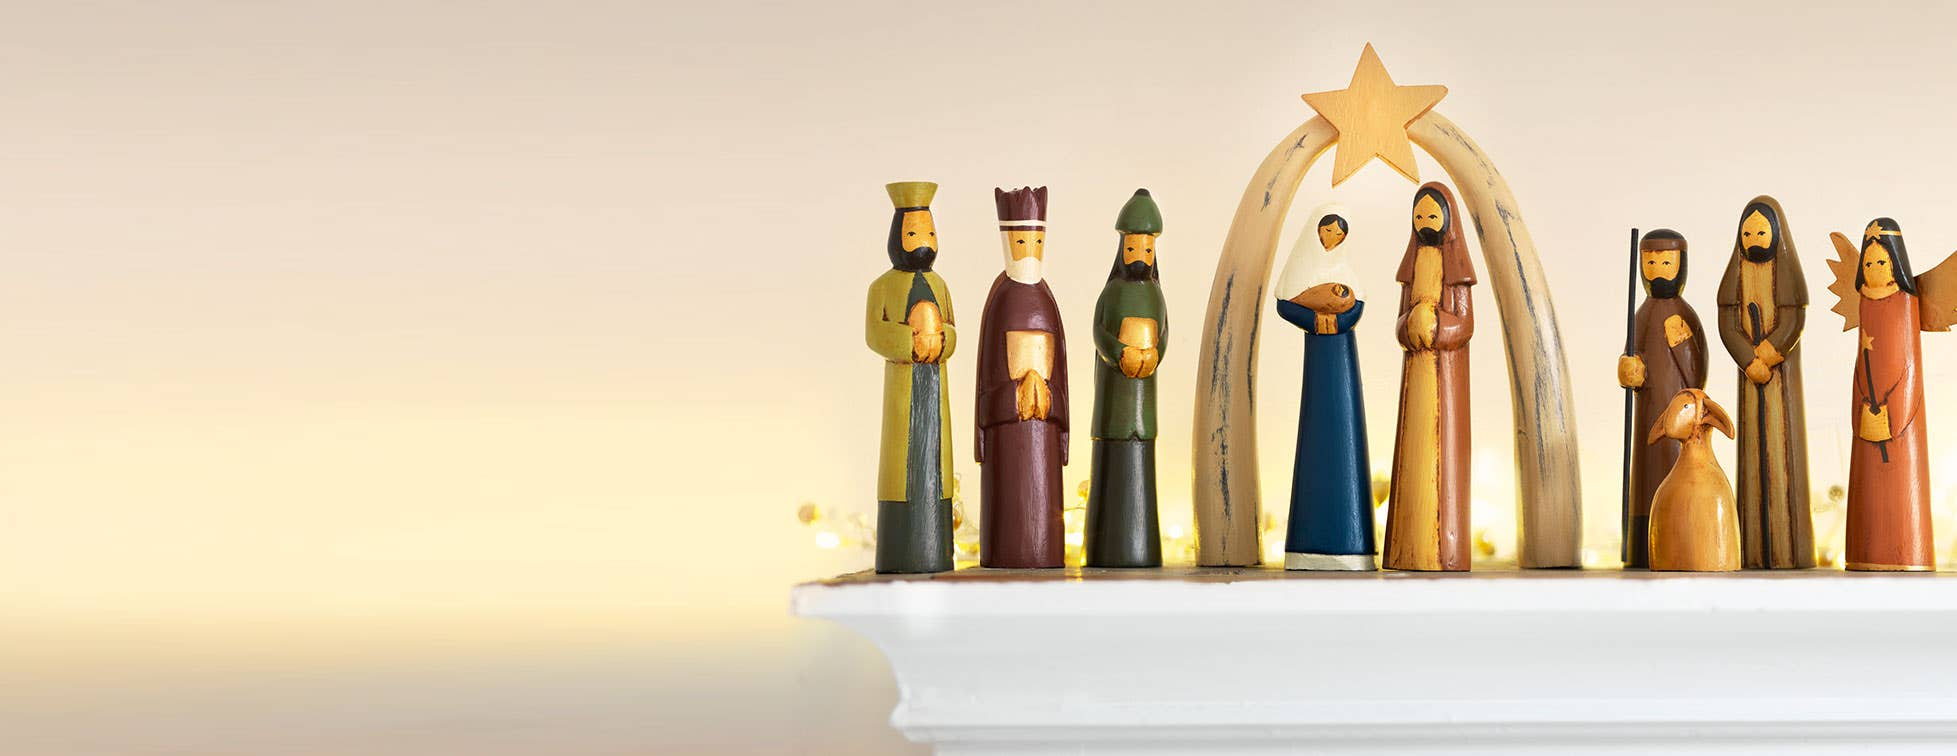 Handcrafted Nativity Sets